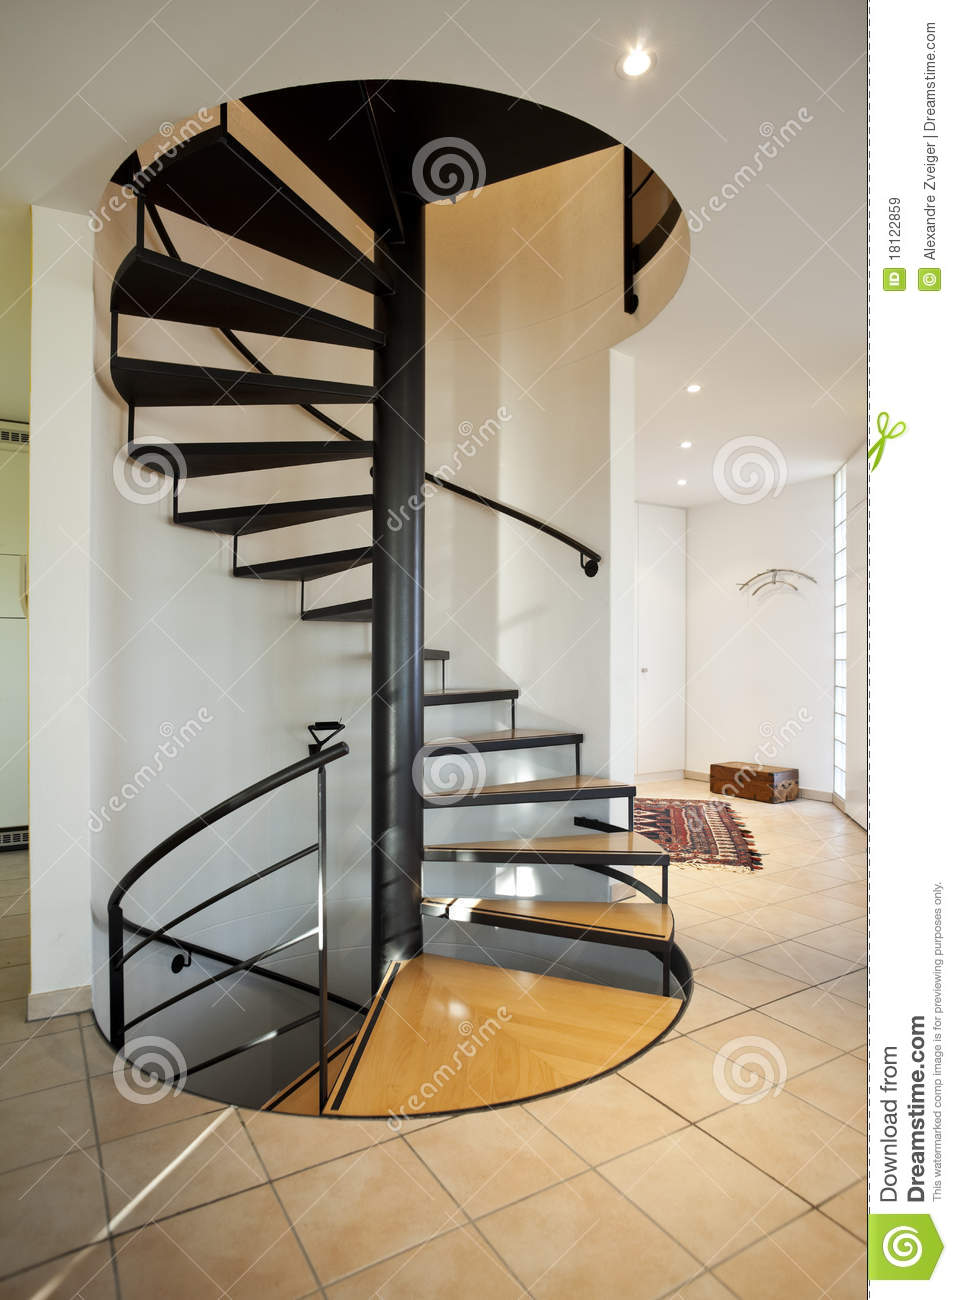 Modern House, Spiral Staircase Royalty Free Stock Images - Image ...